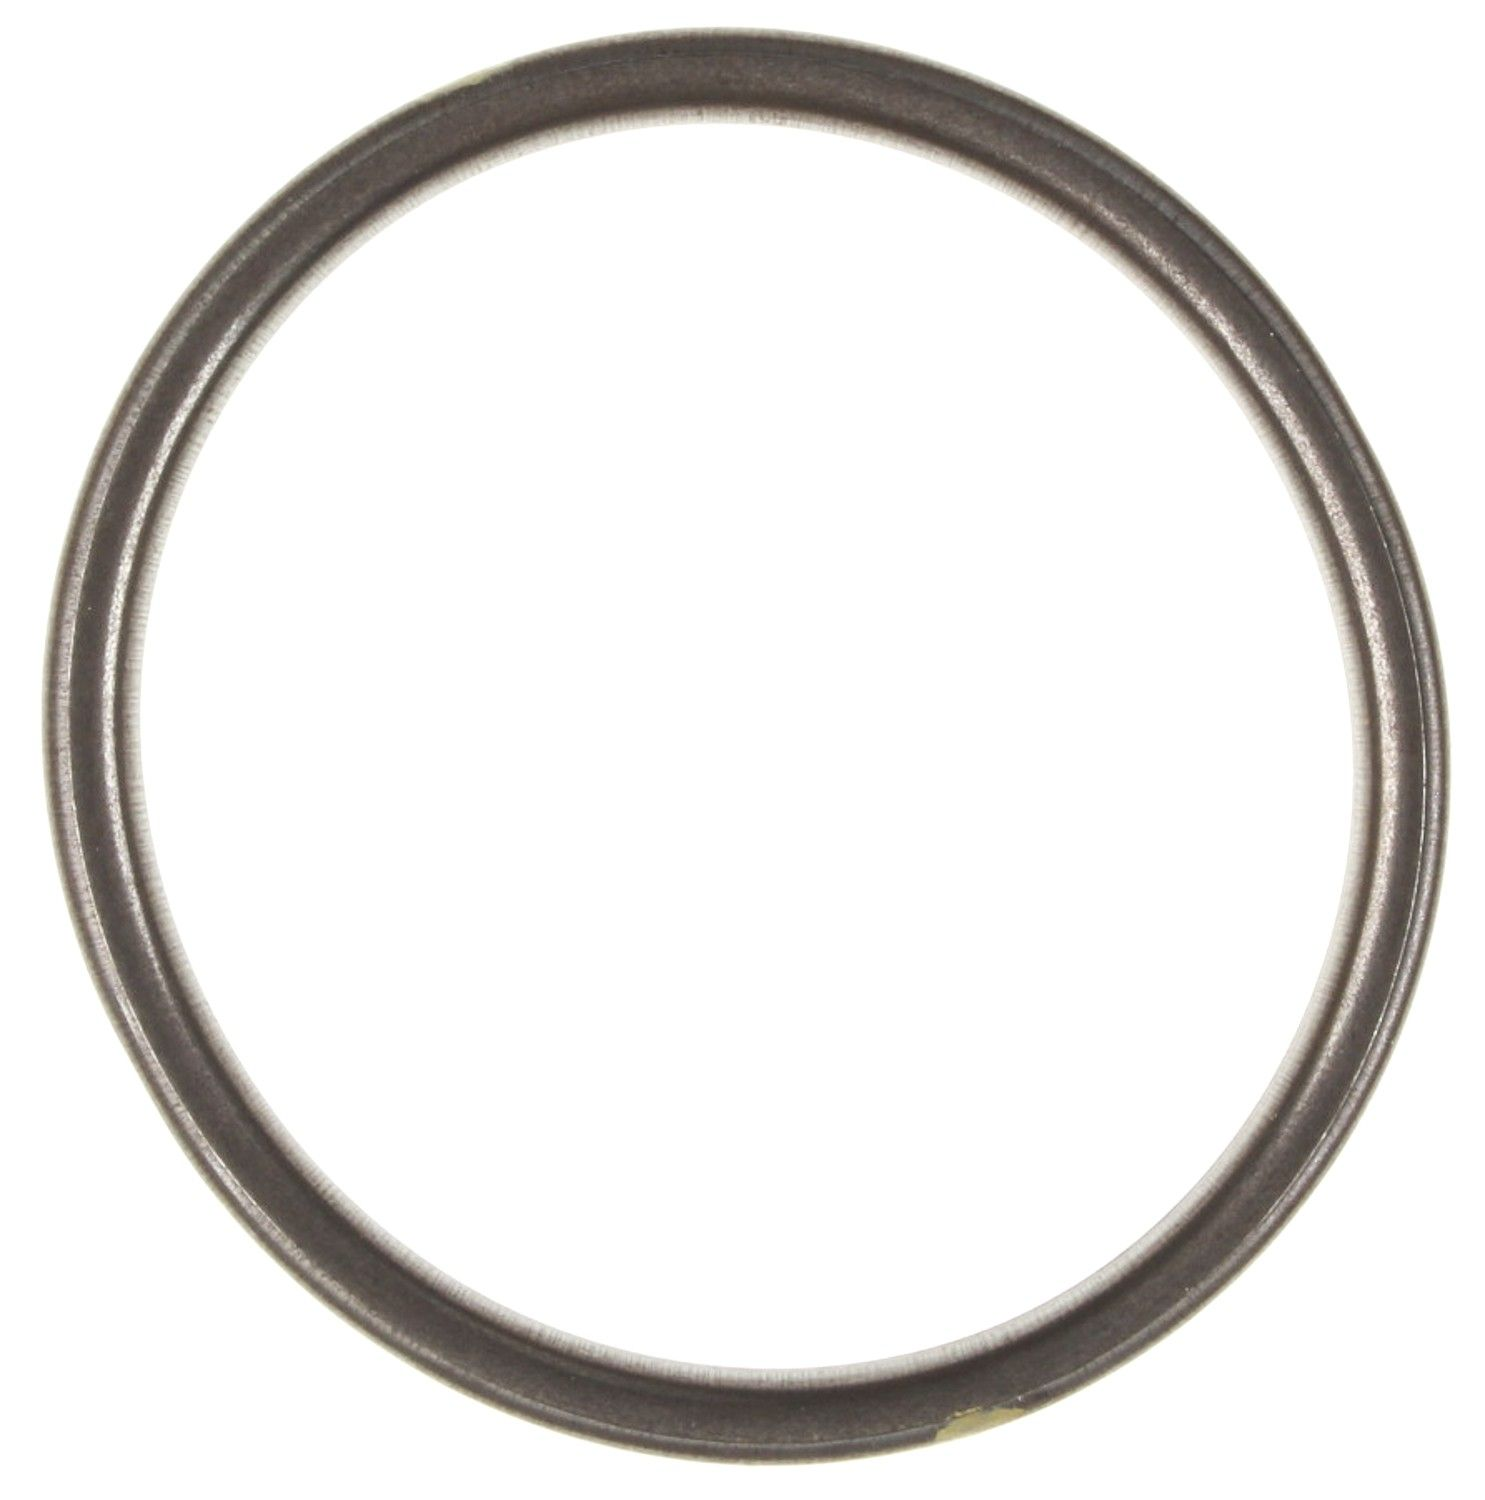 2001 Acura CL Exhaust Pipe Flange Gasket 6 Cyl 3.2L (Victor Gaskets F10108)  Ring Type A, ID 1.975in, OD 1.280in, Width 0.165in Steel and Composition ...